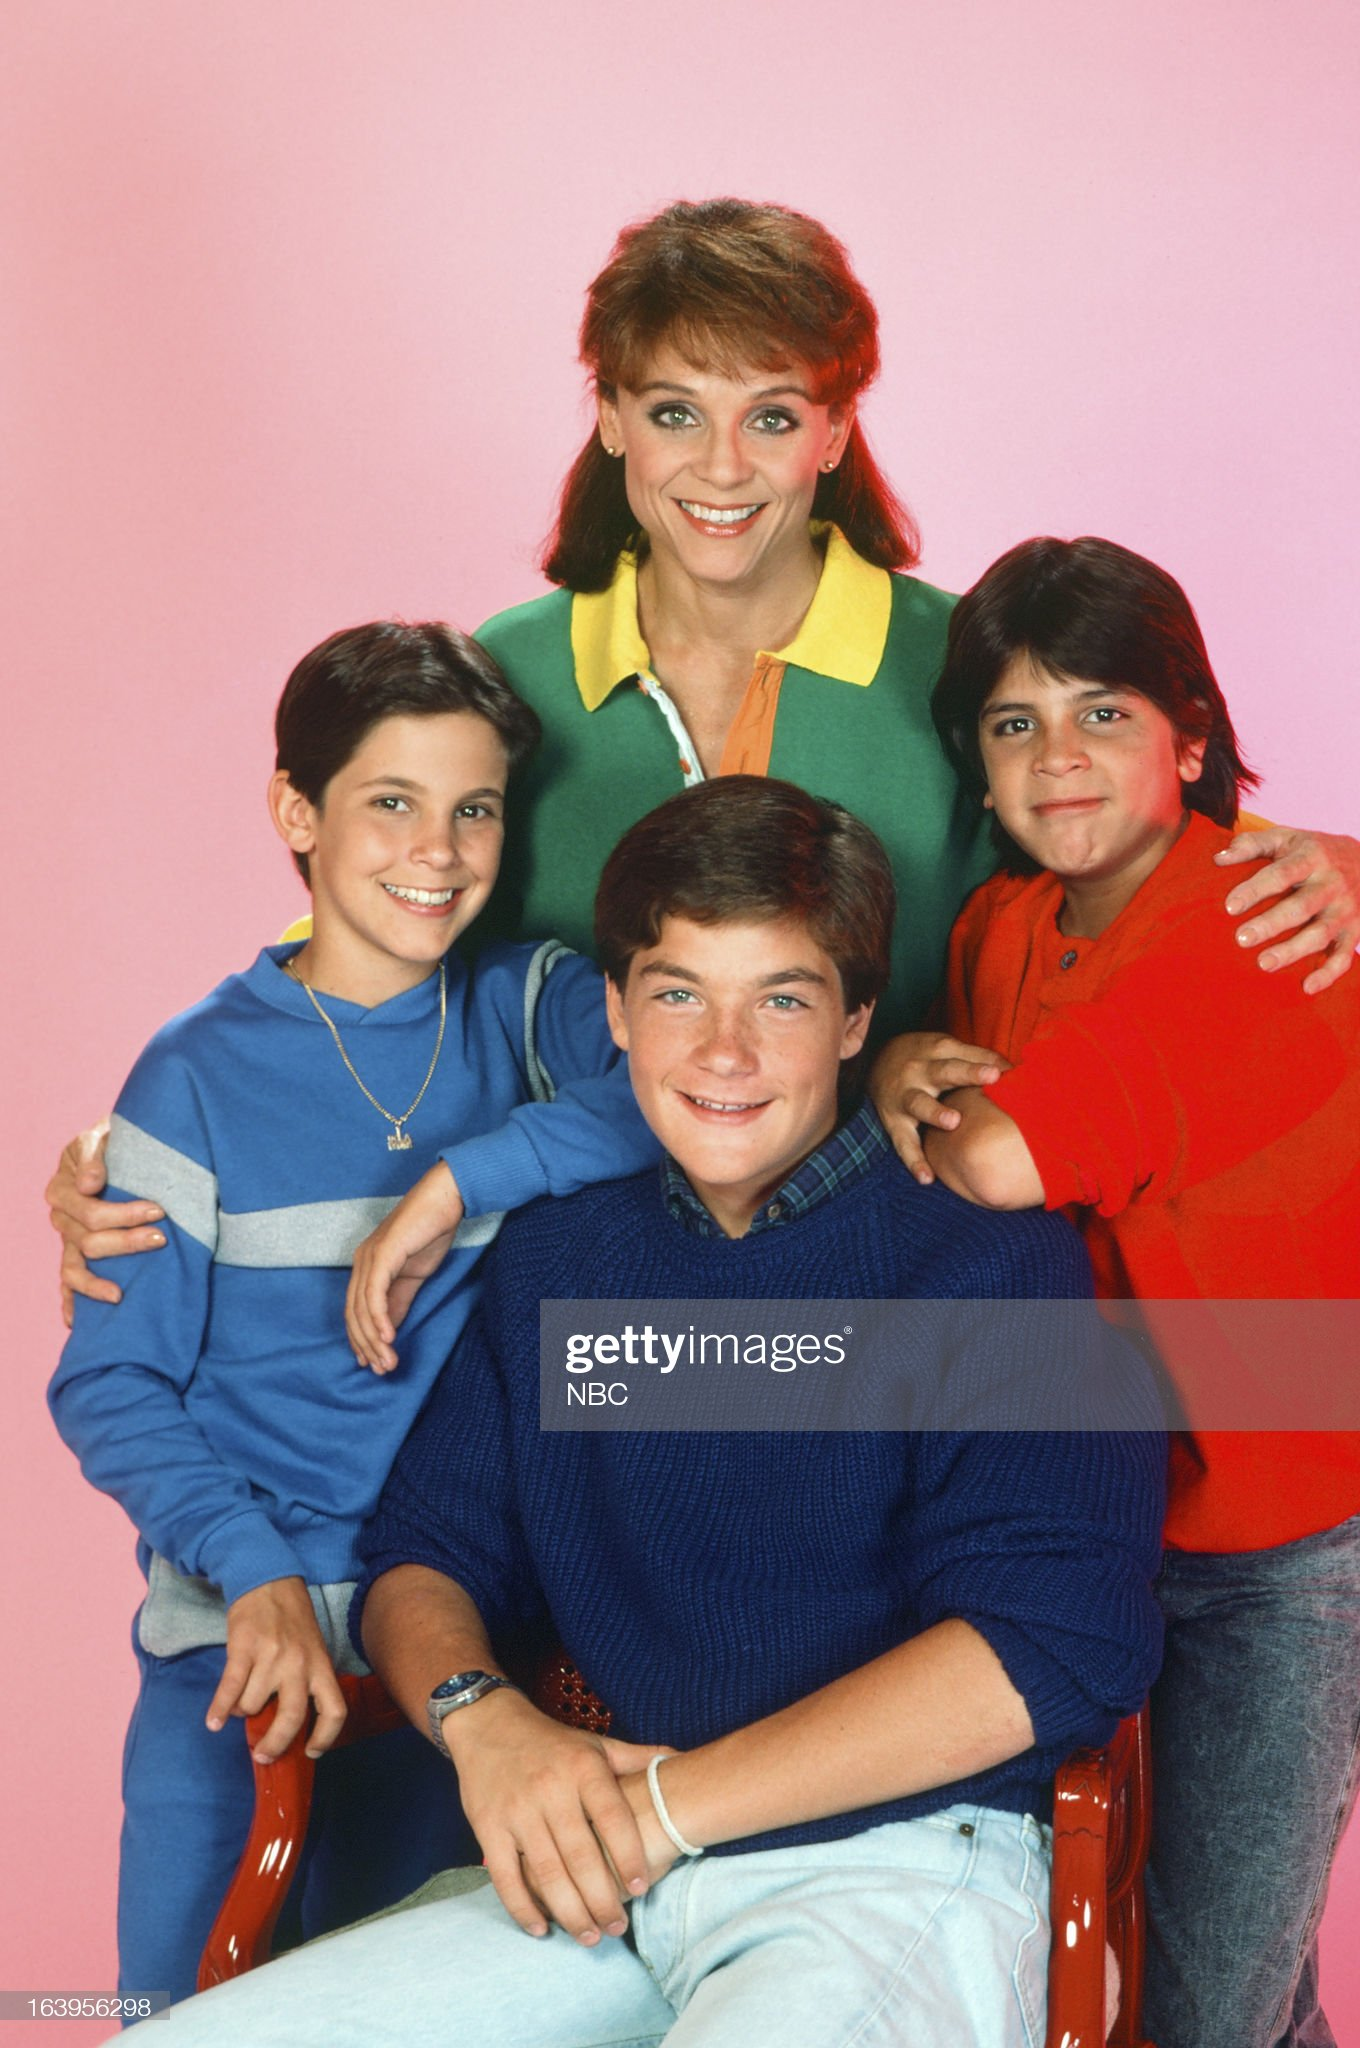 season-1-pictured-valerie-harper-as-valerie-hogan-danny-ponce-as-picture-id163956298